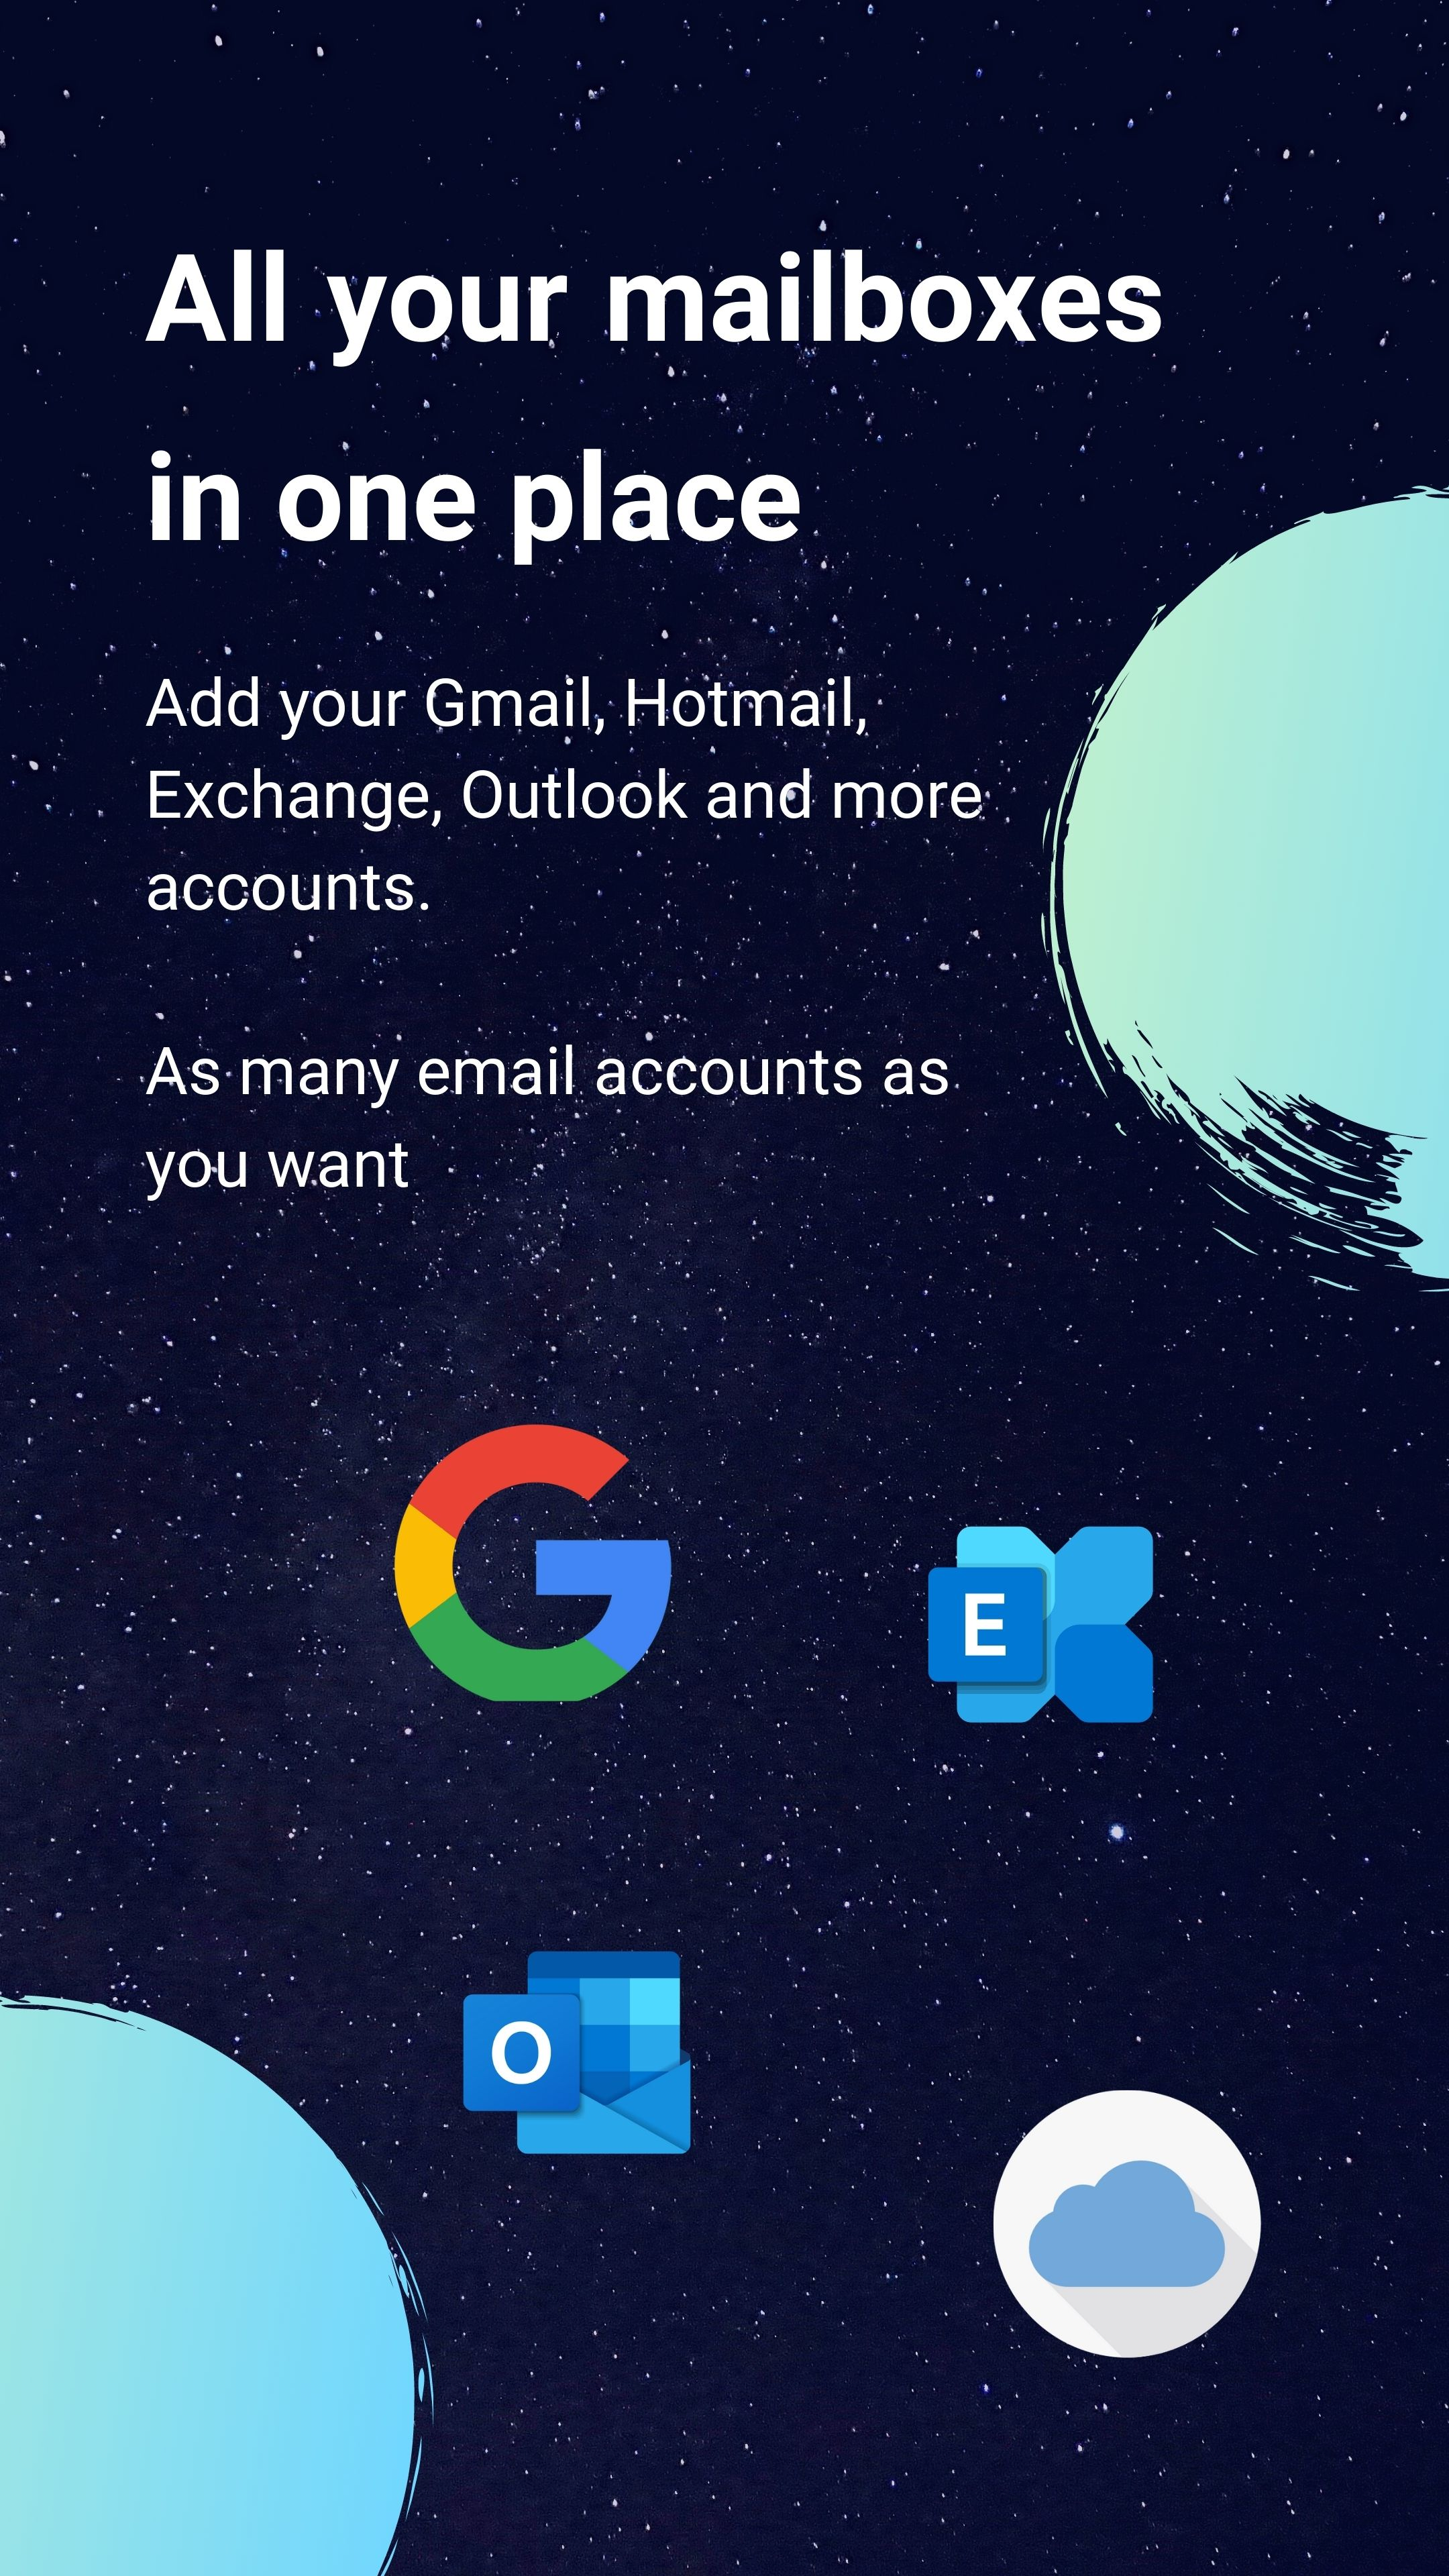 Encrypt all your mailboxes in one place